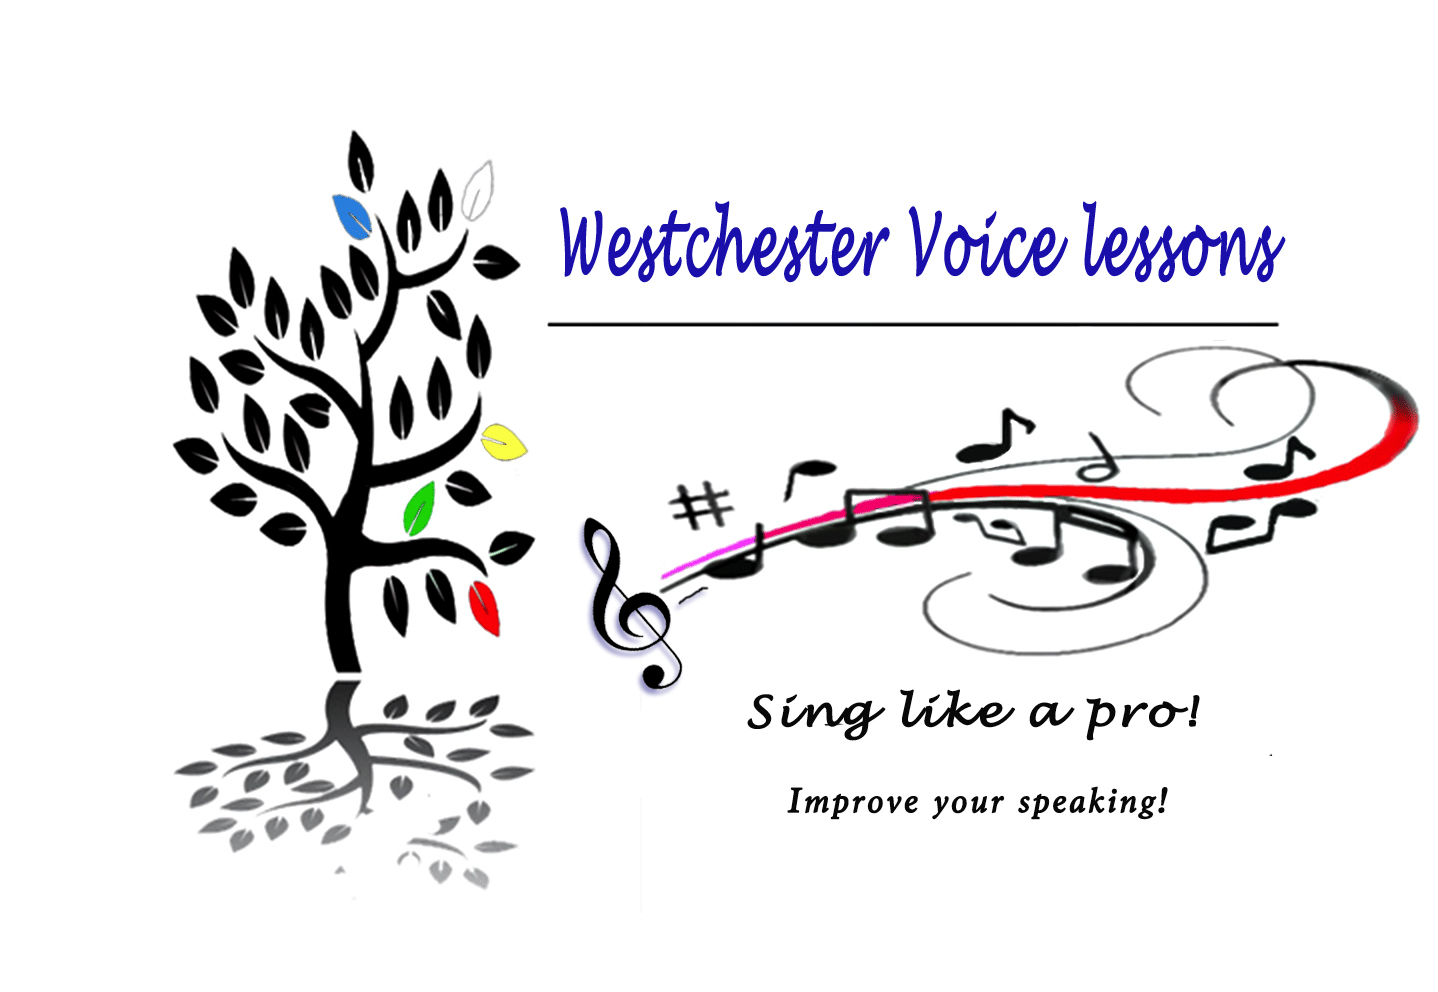 westchestervoicelessons